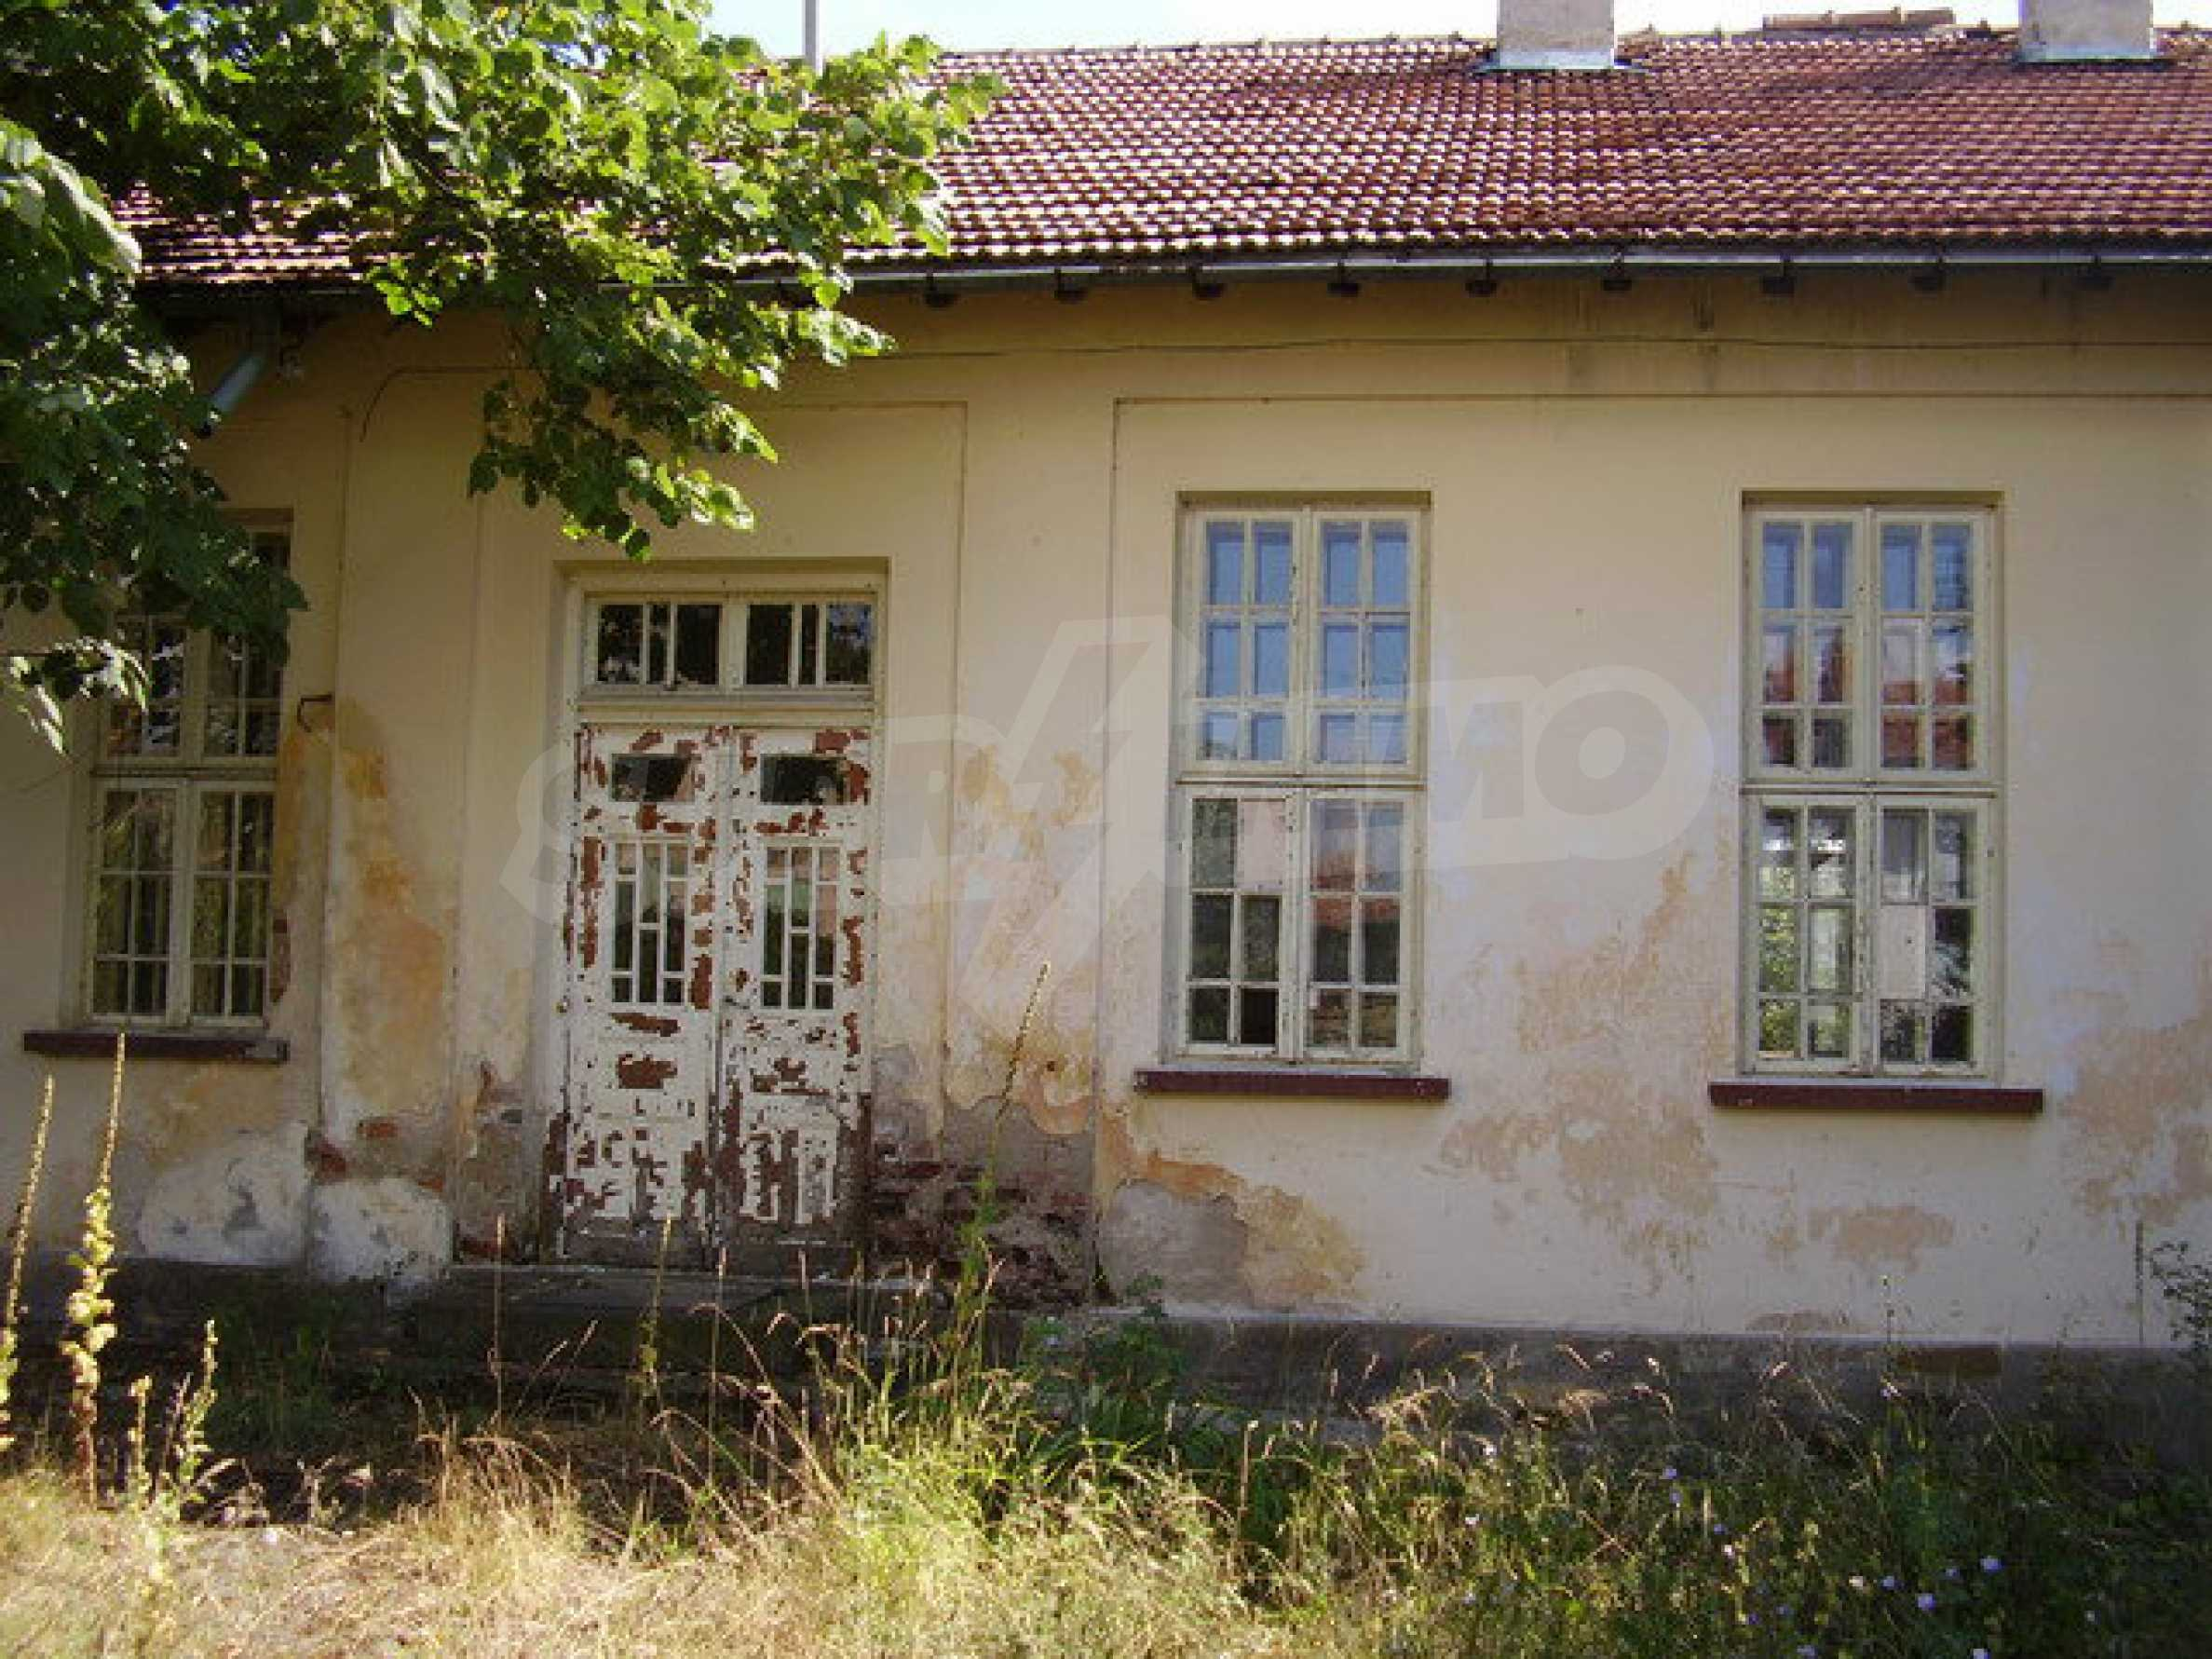 Old school in a village located between towns Dryanovo and Kilifarevo 3